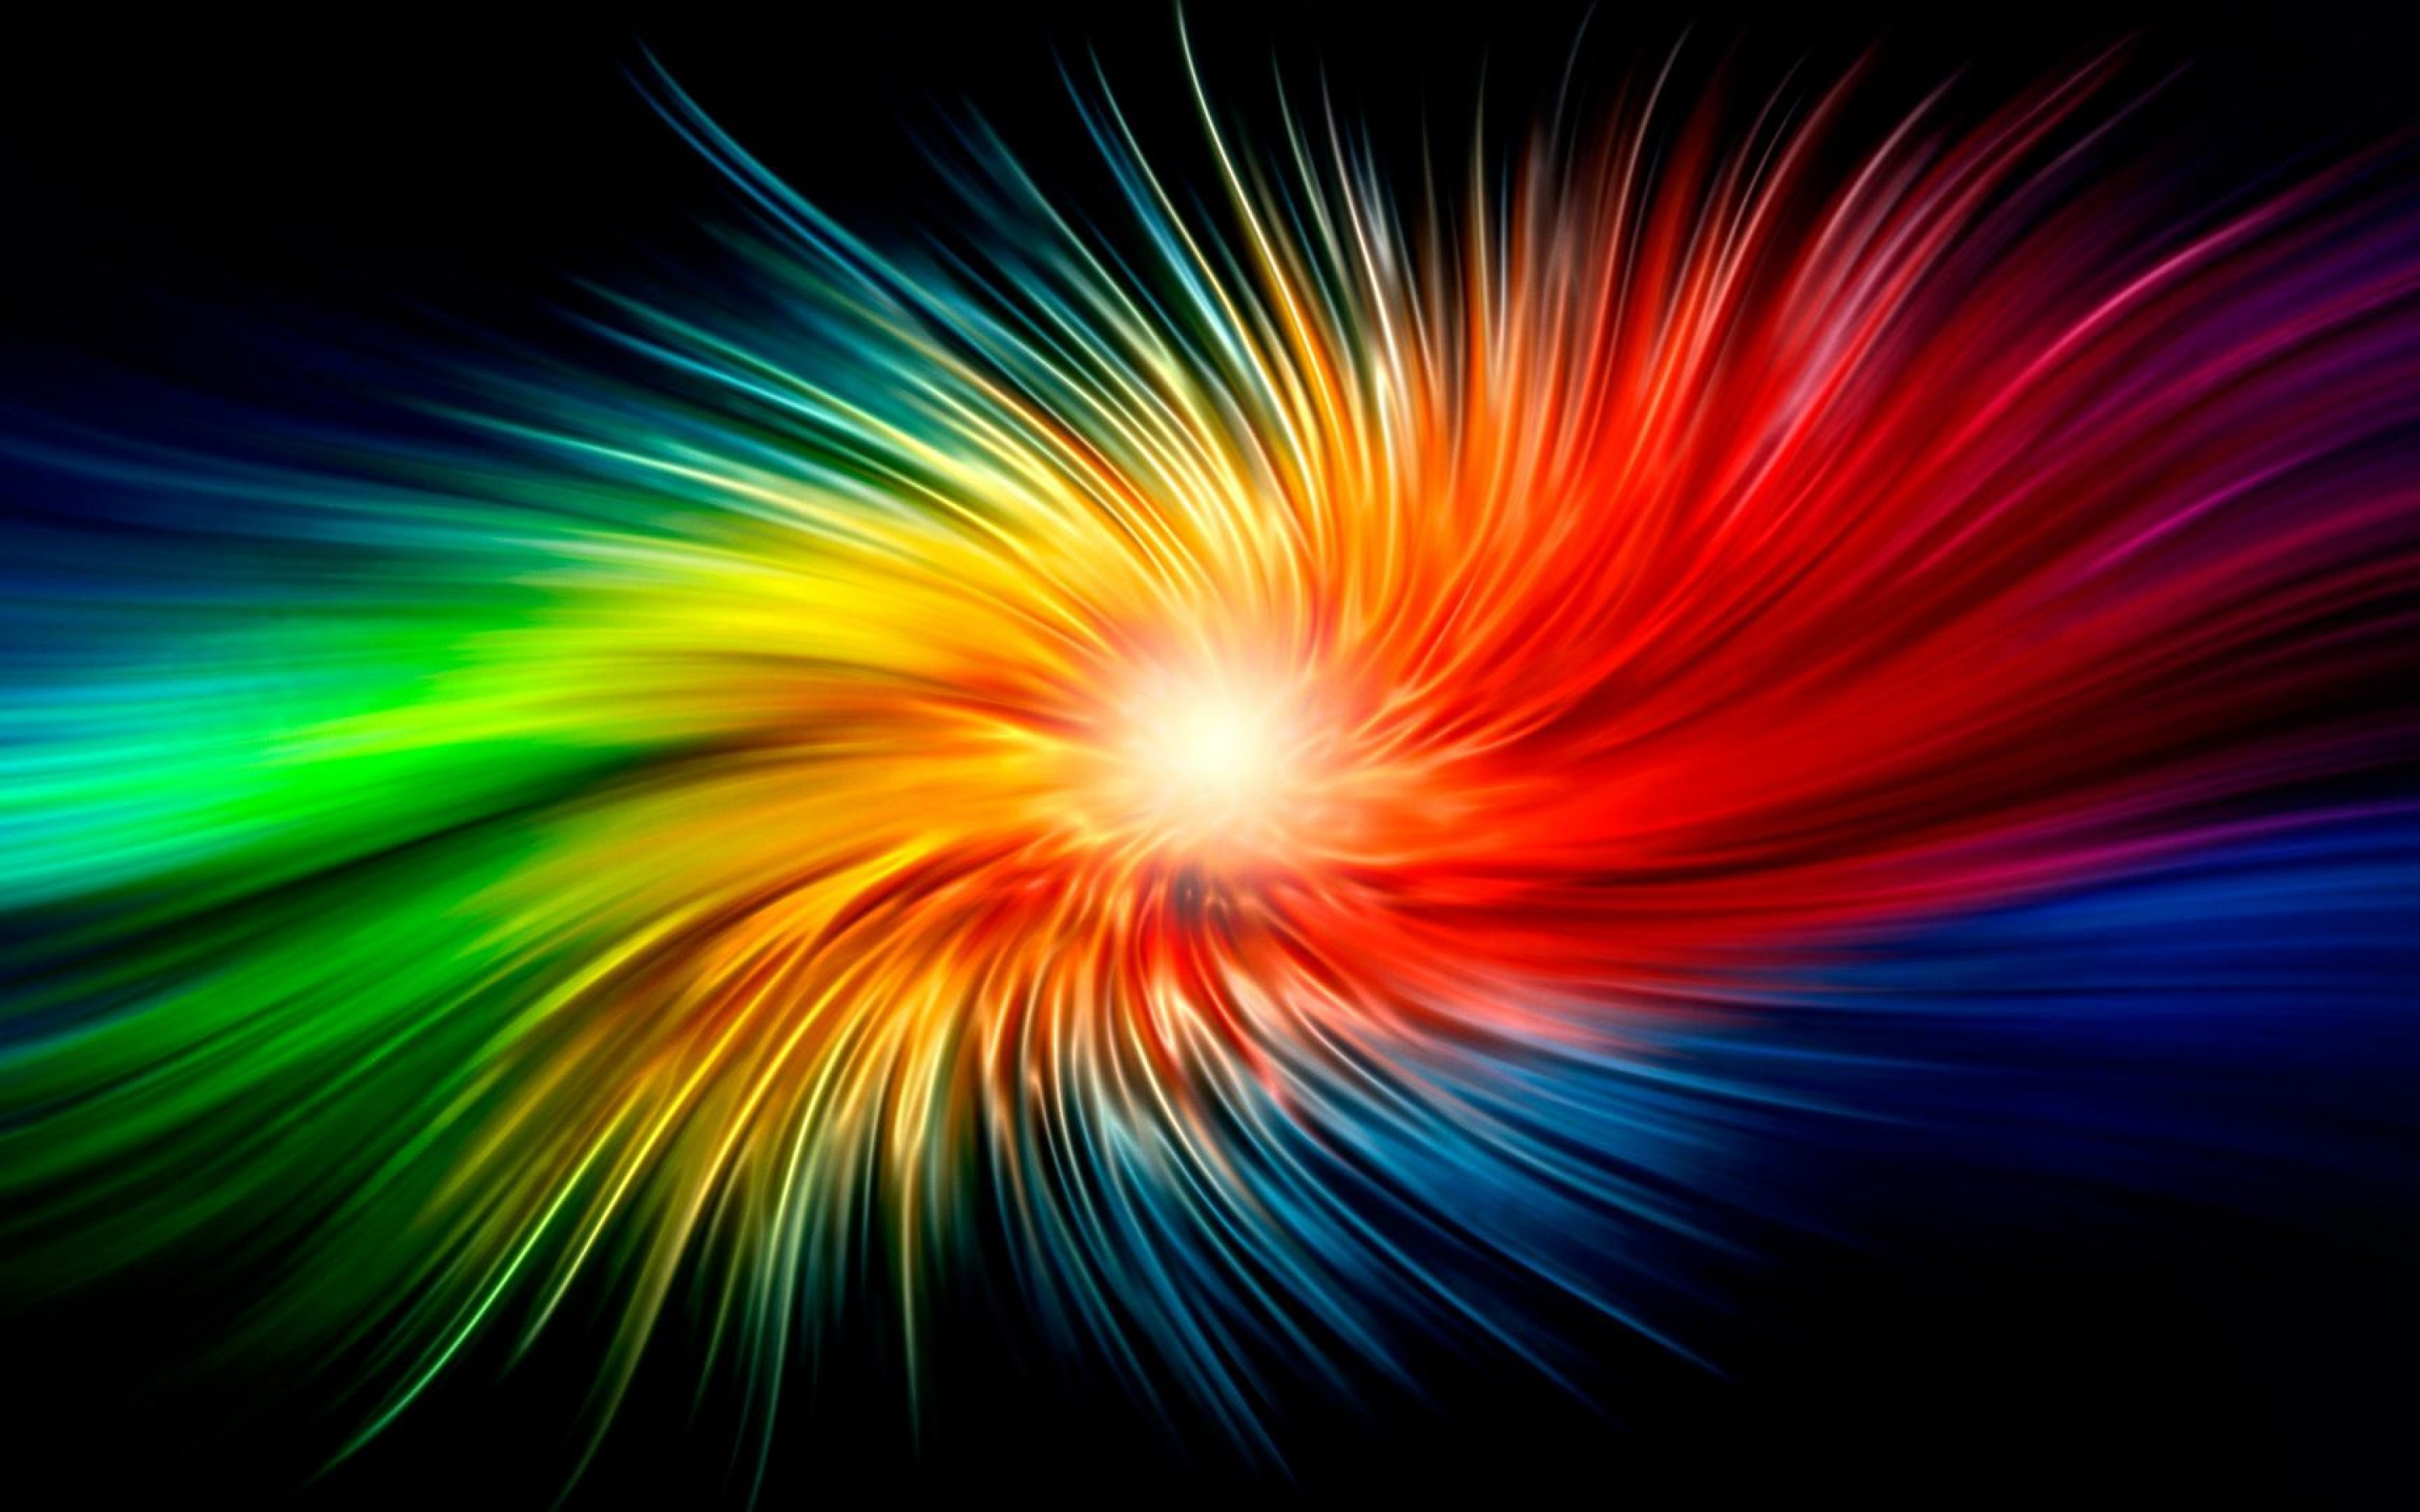 Hd Colorful Backgrounds: Colorful HD Backgrounds ·① WallpaperTag